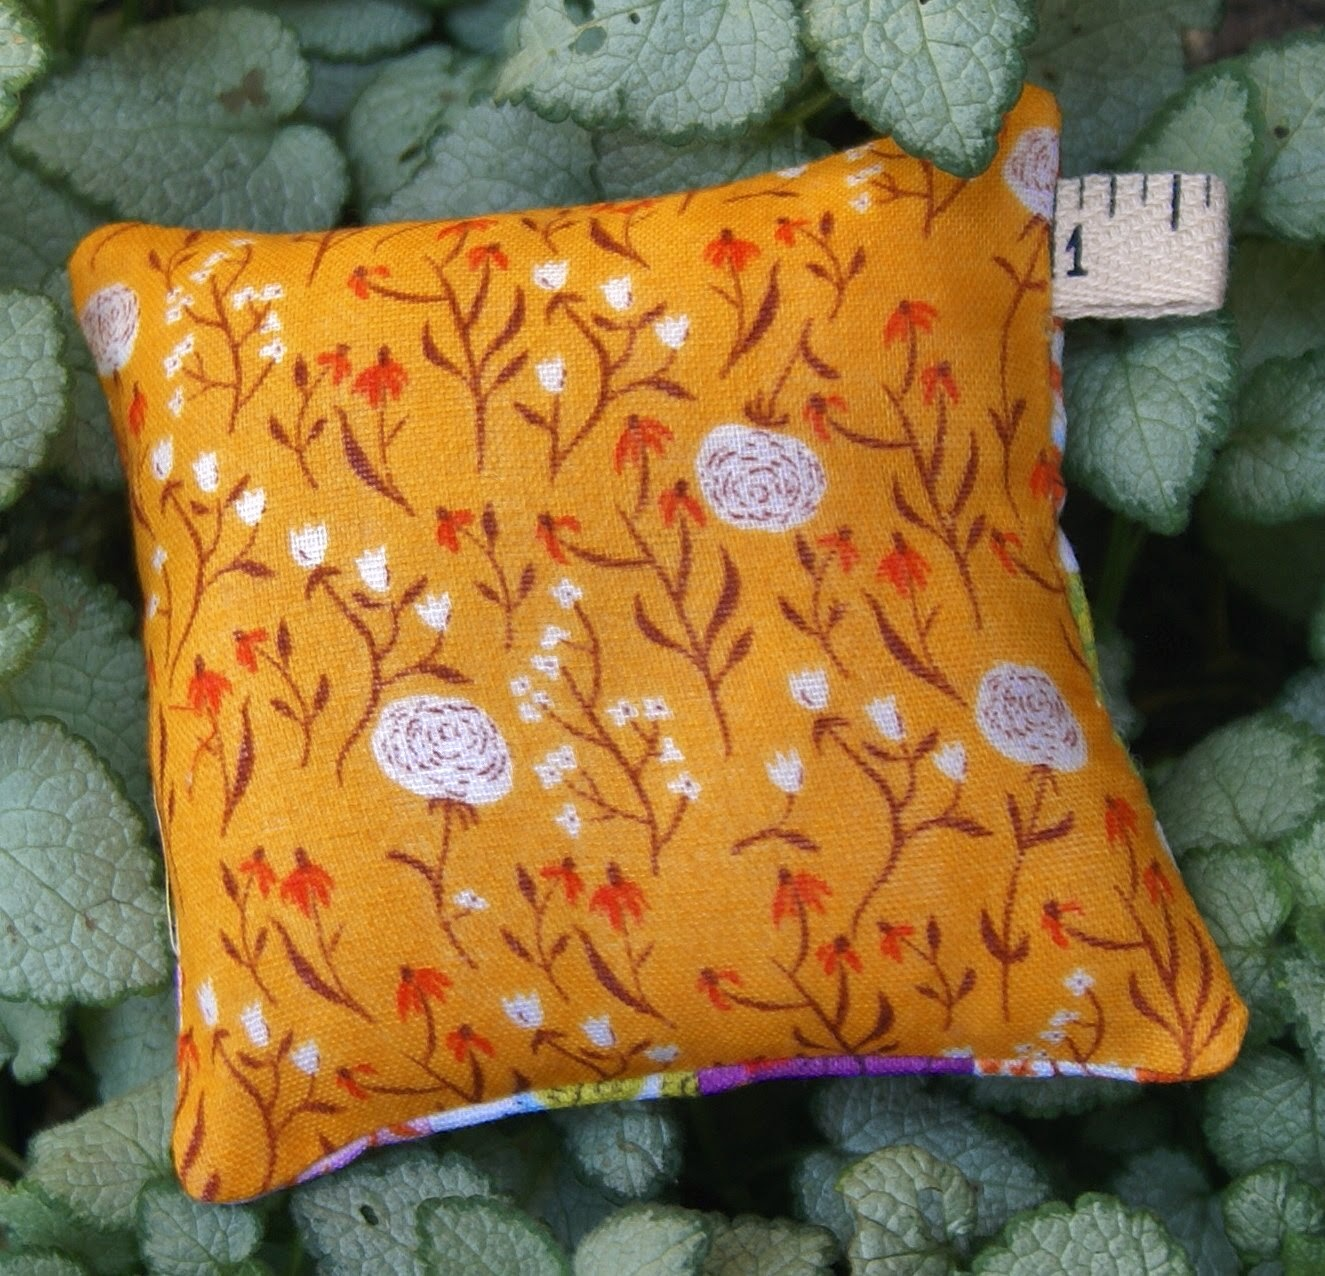 Far, Far Away Pincushion by Fabric Mutt from tutorial by S.O.T.A.K. Handmade